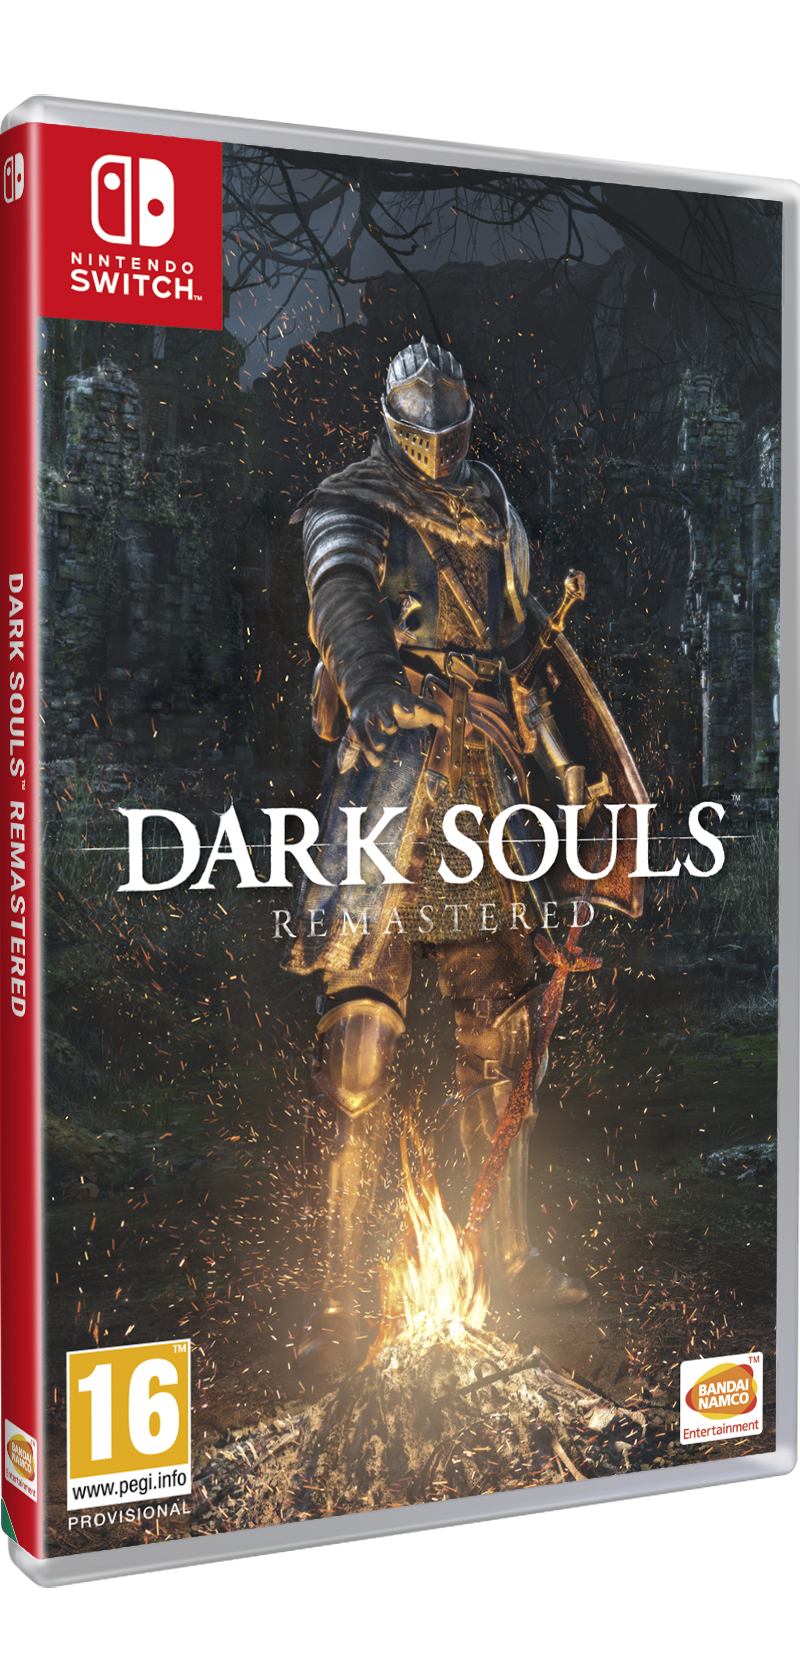 REKINDLE YOUR HUMANITY WITH DARK SOULS: REMASTERED FOR THE NINTENDO SWITCH, PLAYSTATION4 SYSTEM, XBOX ONE, AND STEAM